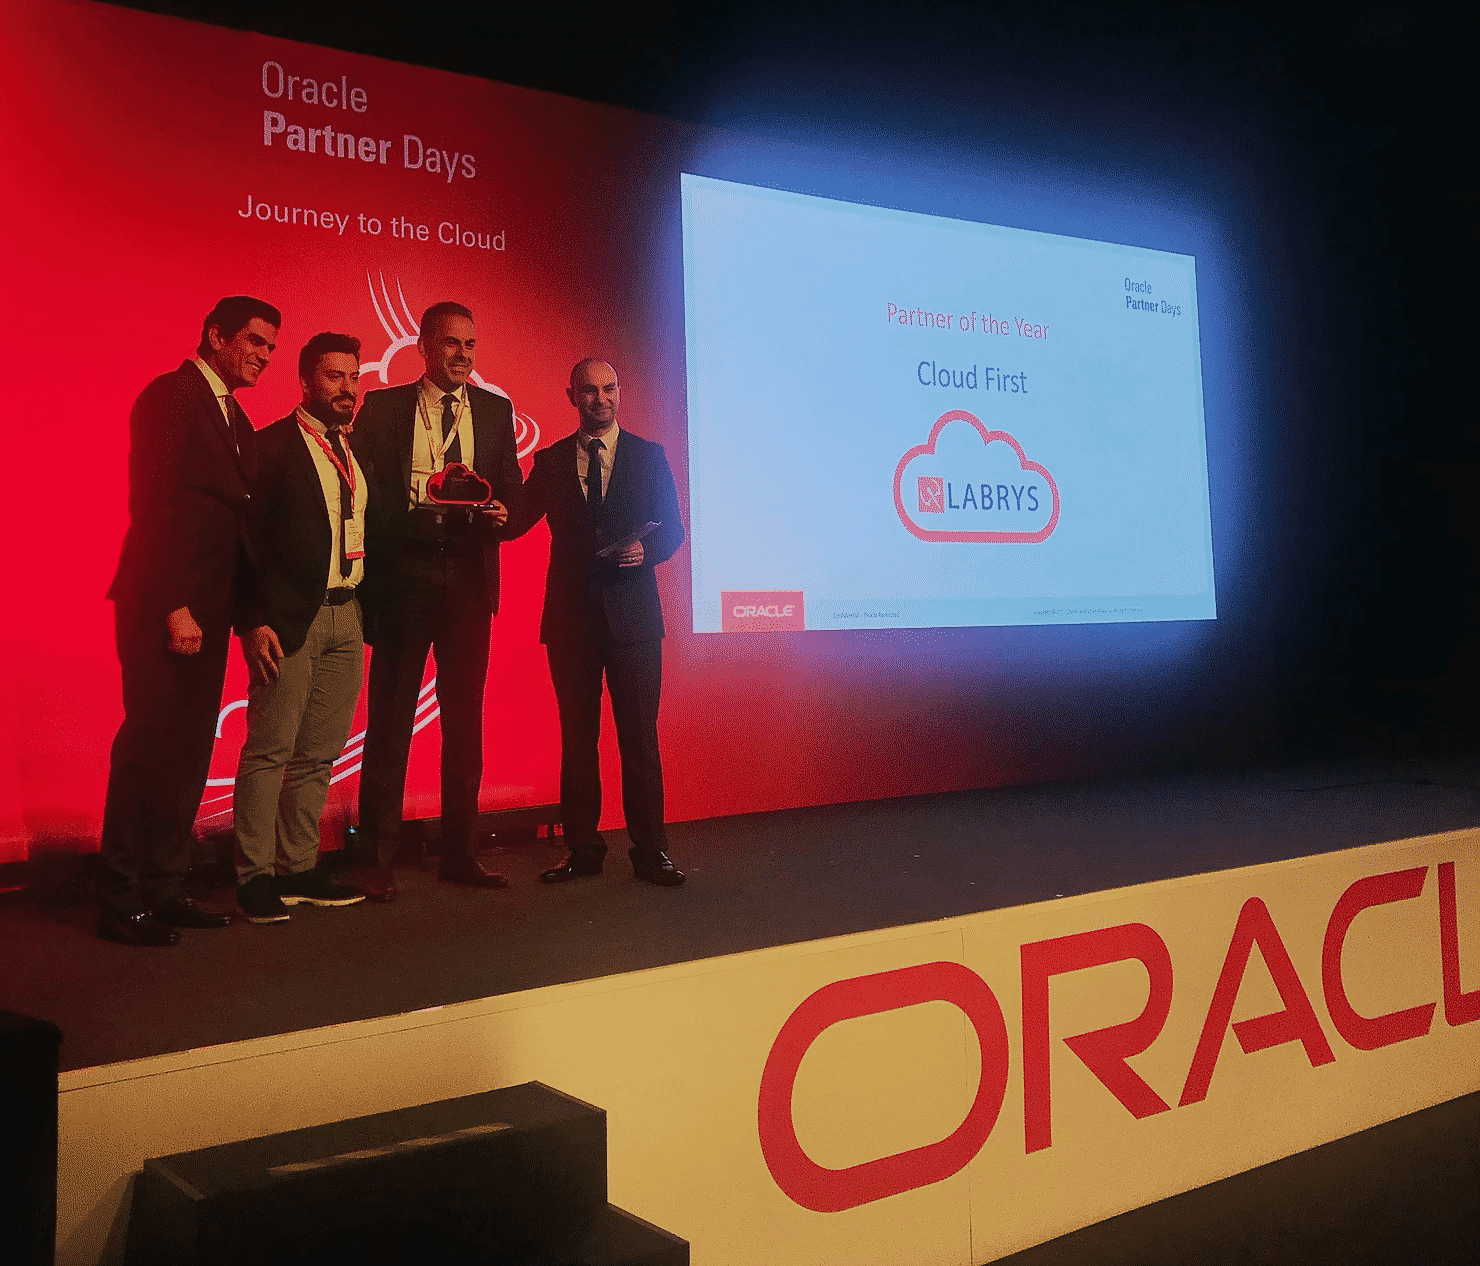 Labrys Wins Oracle's 'Cloud First' Partner of the Year Award 2017